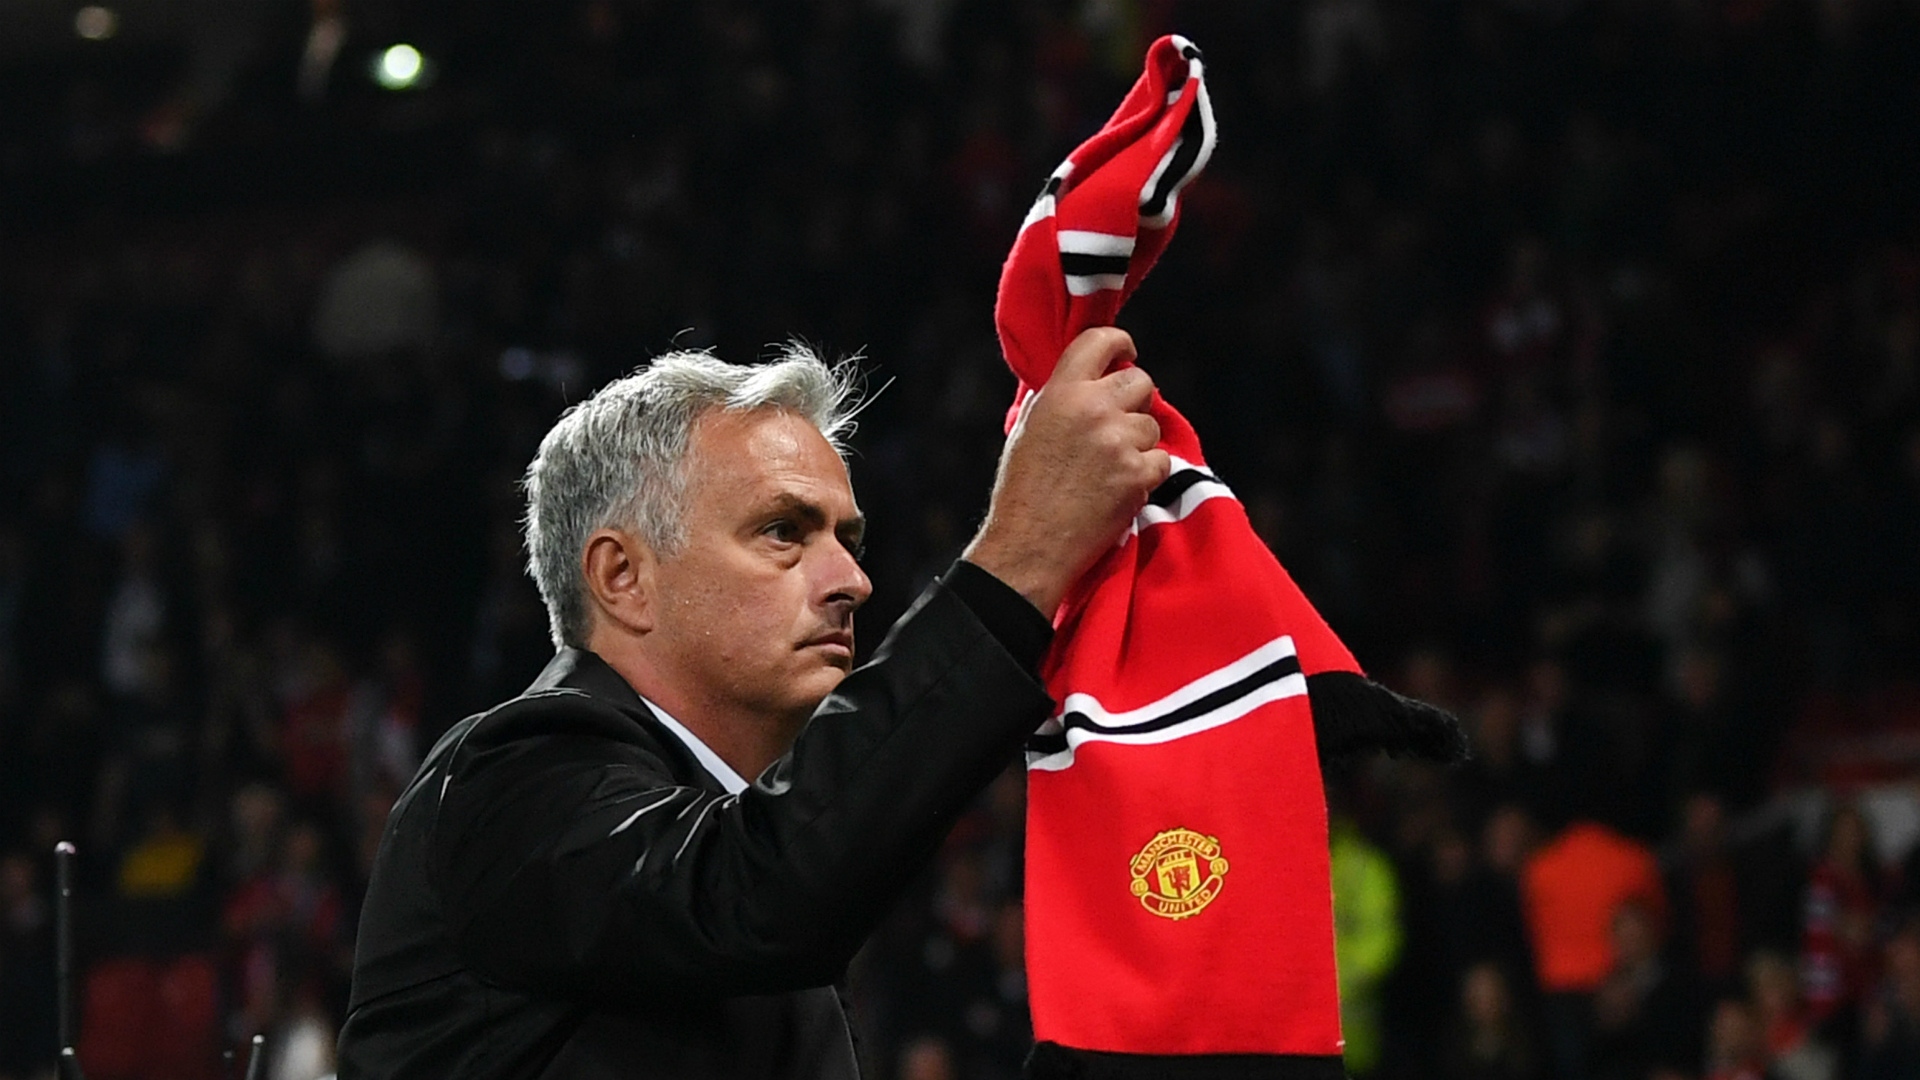 Manchester United is a 'closed chapter', says Tottenham boss Mourinho